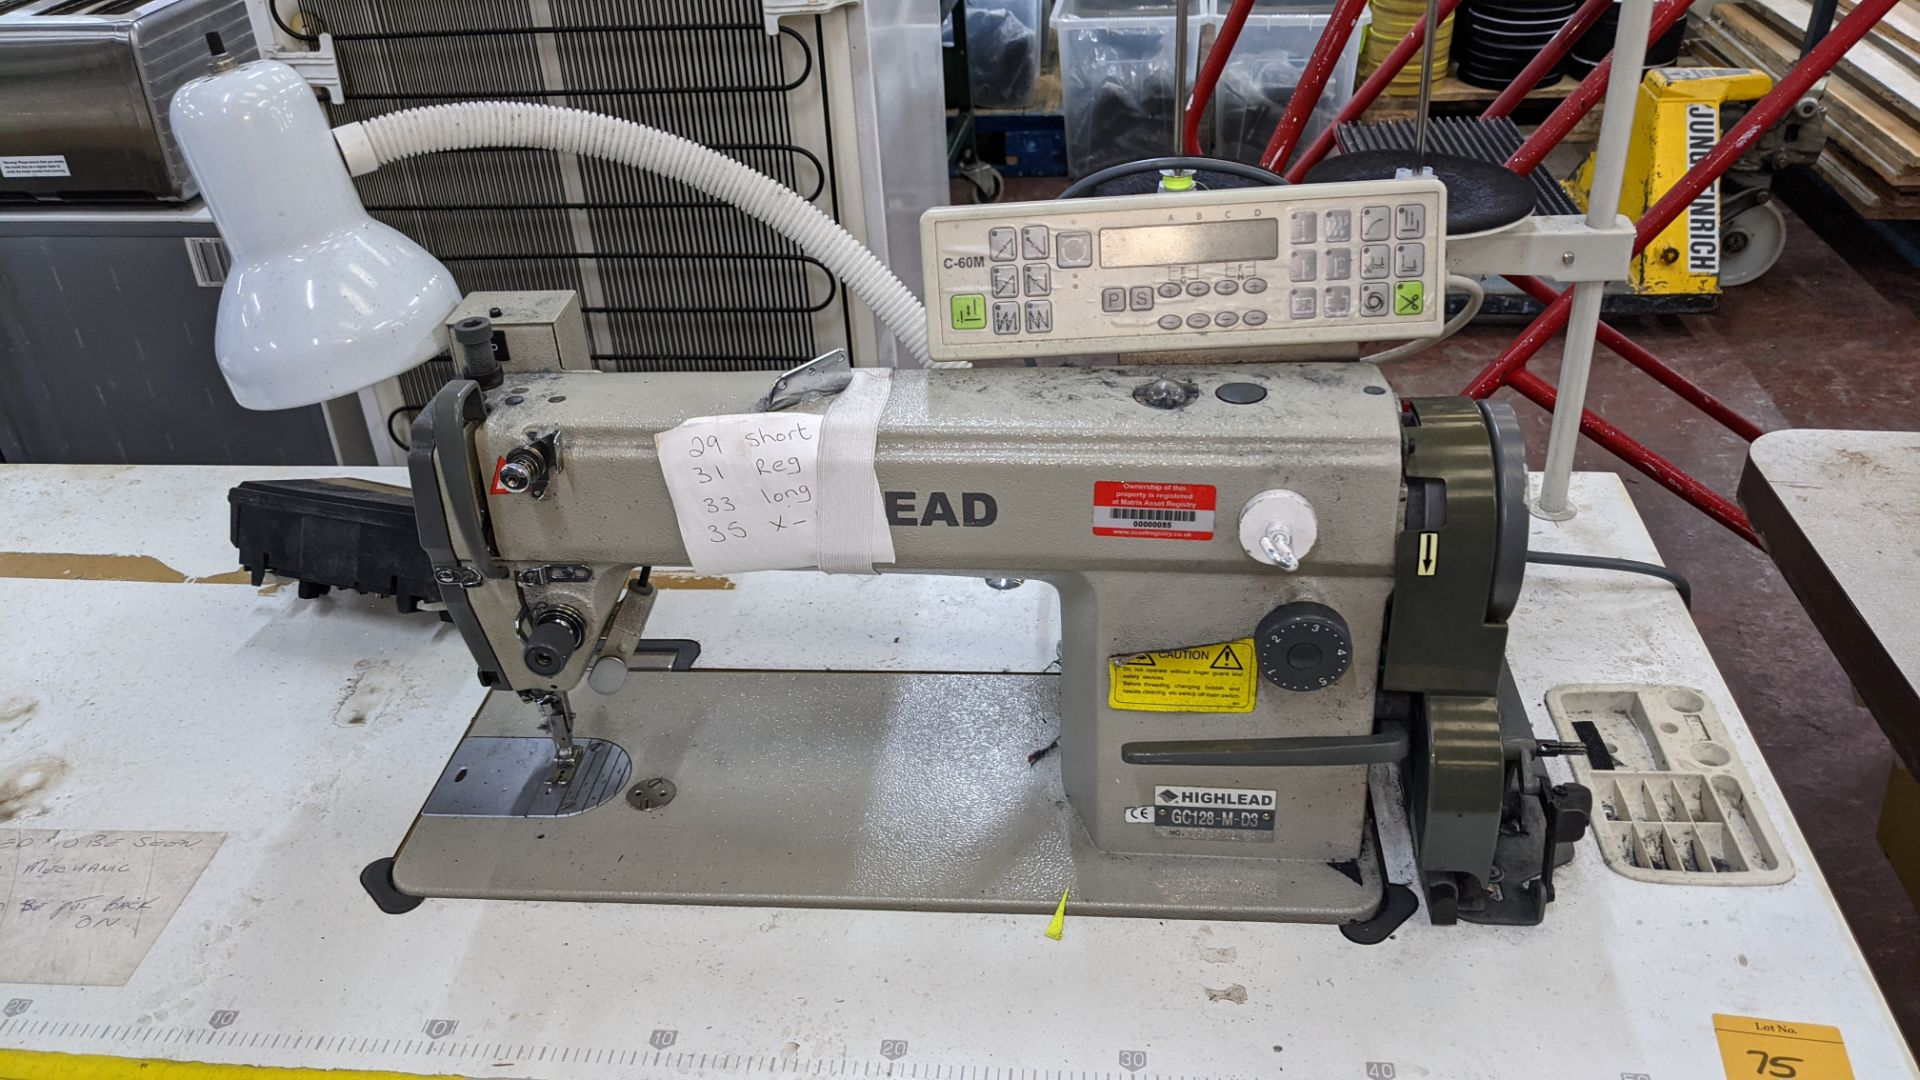 Highlead model GC128-M-D3 sewing machine with model C-60M digital controller - Image 6 of 17